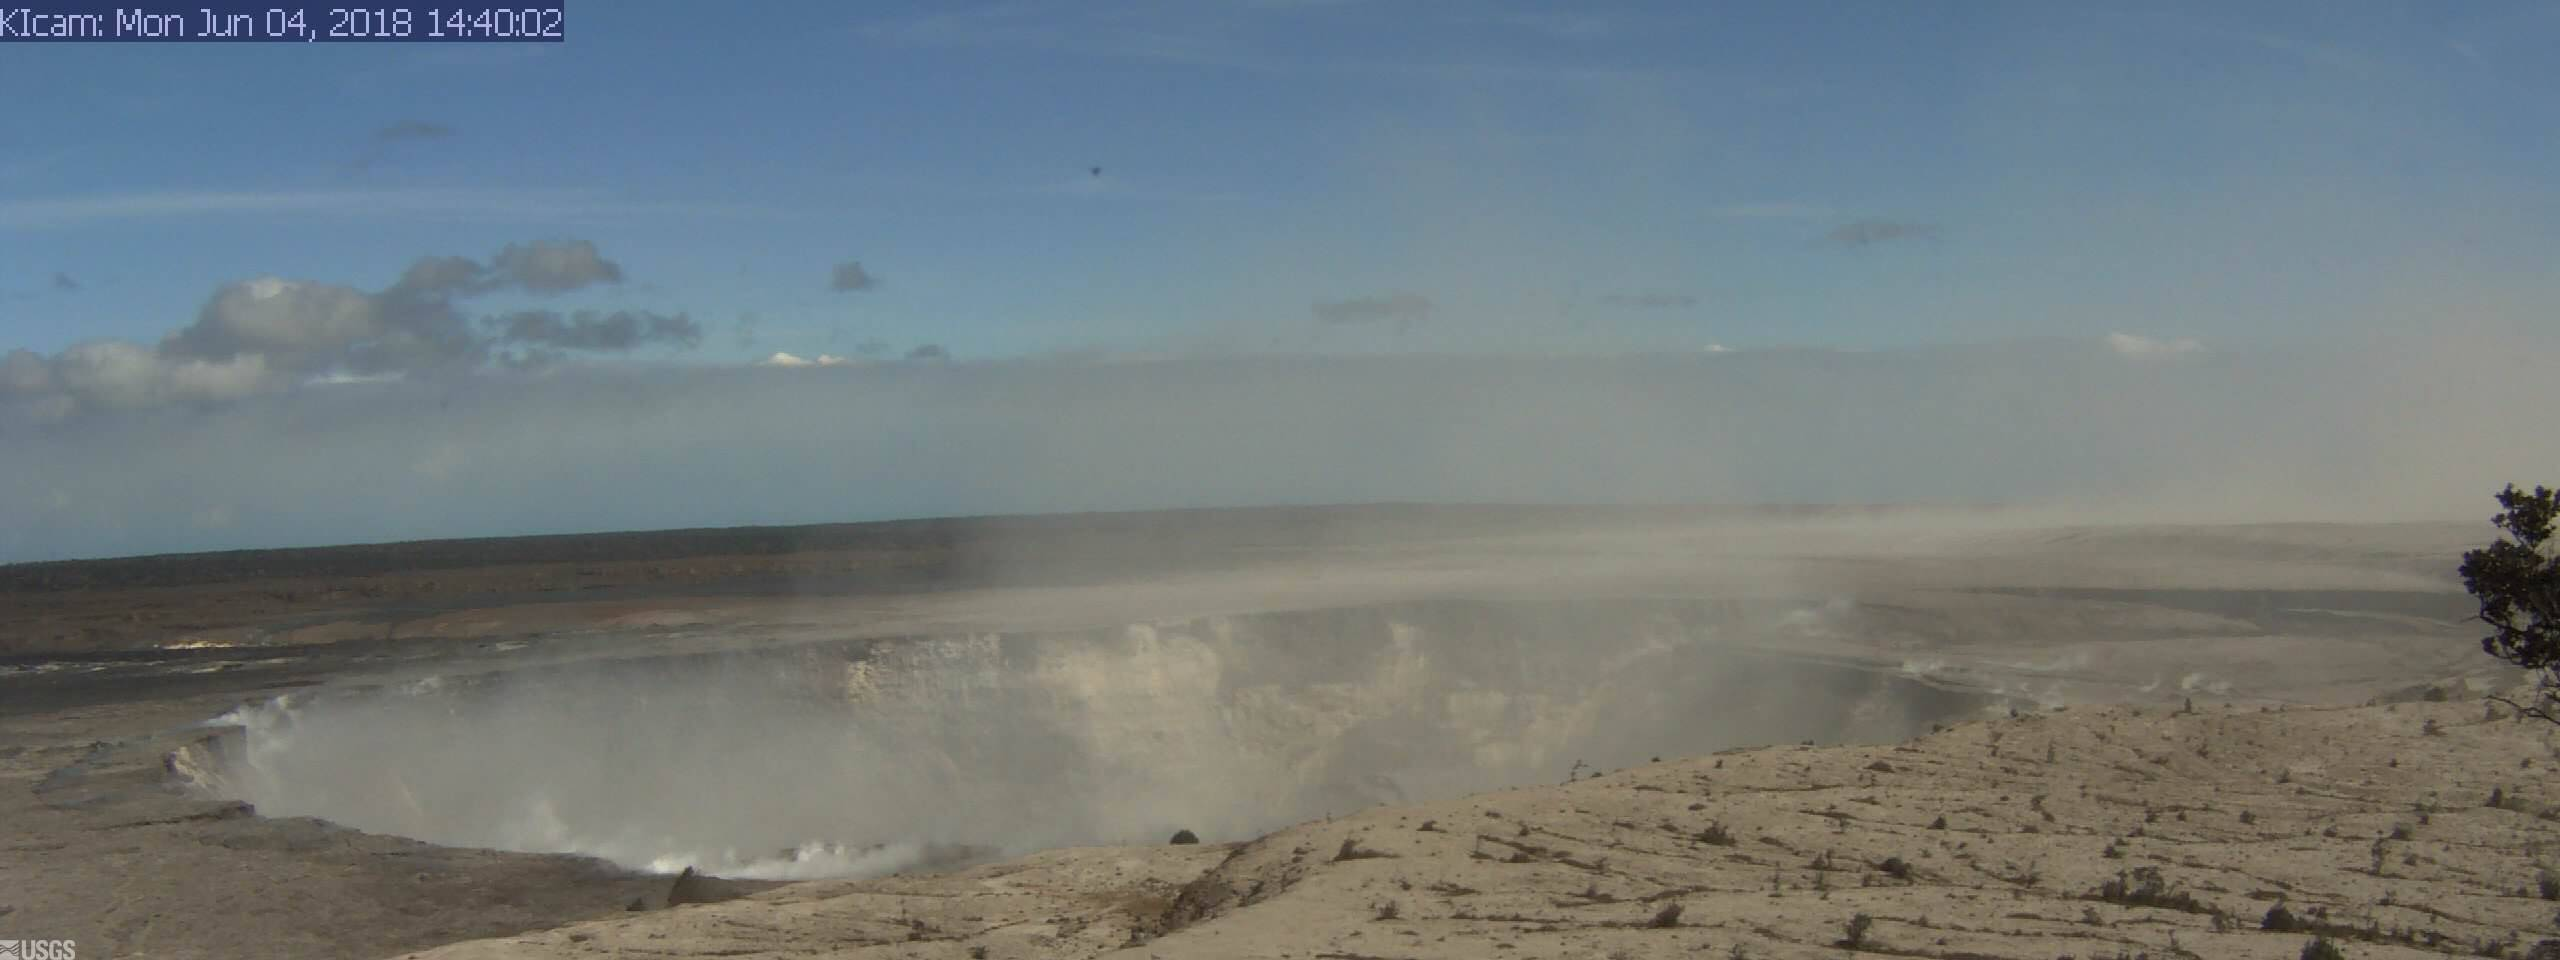 Panorama of Kīlauea Caldera from HVO Observation Tower (2018)